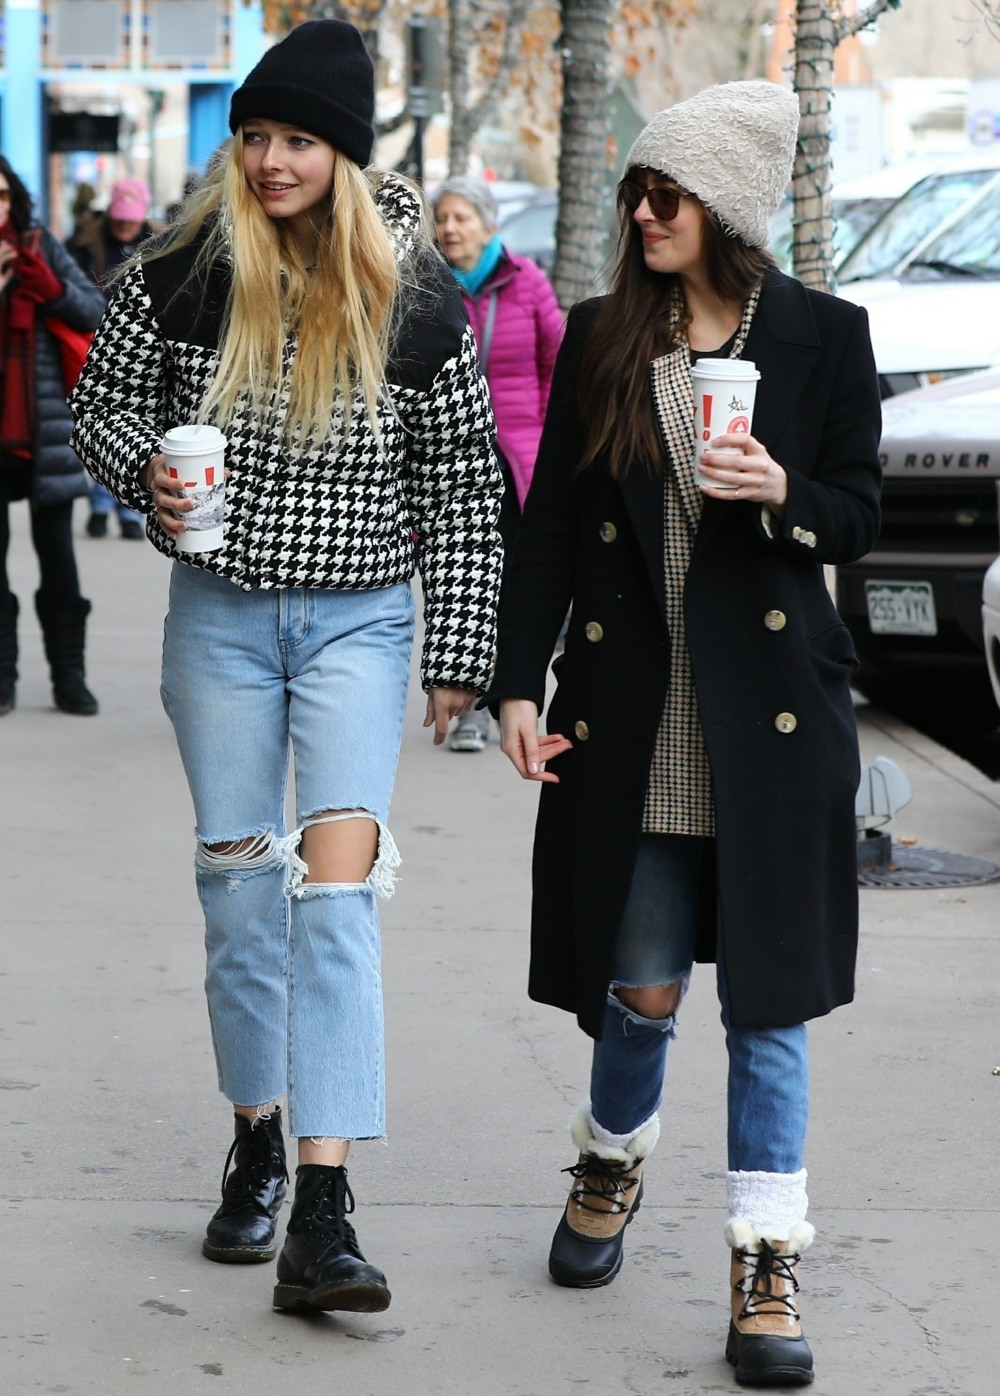 Dakota Johnson and Apple Martin go out for hot coffee in cold Aspen together